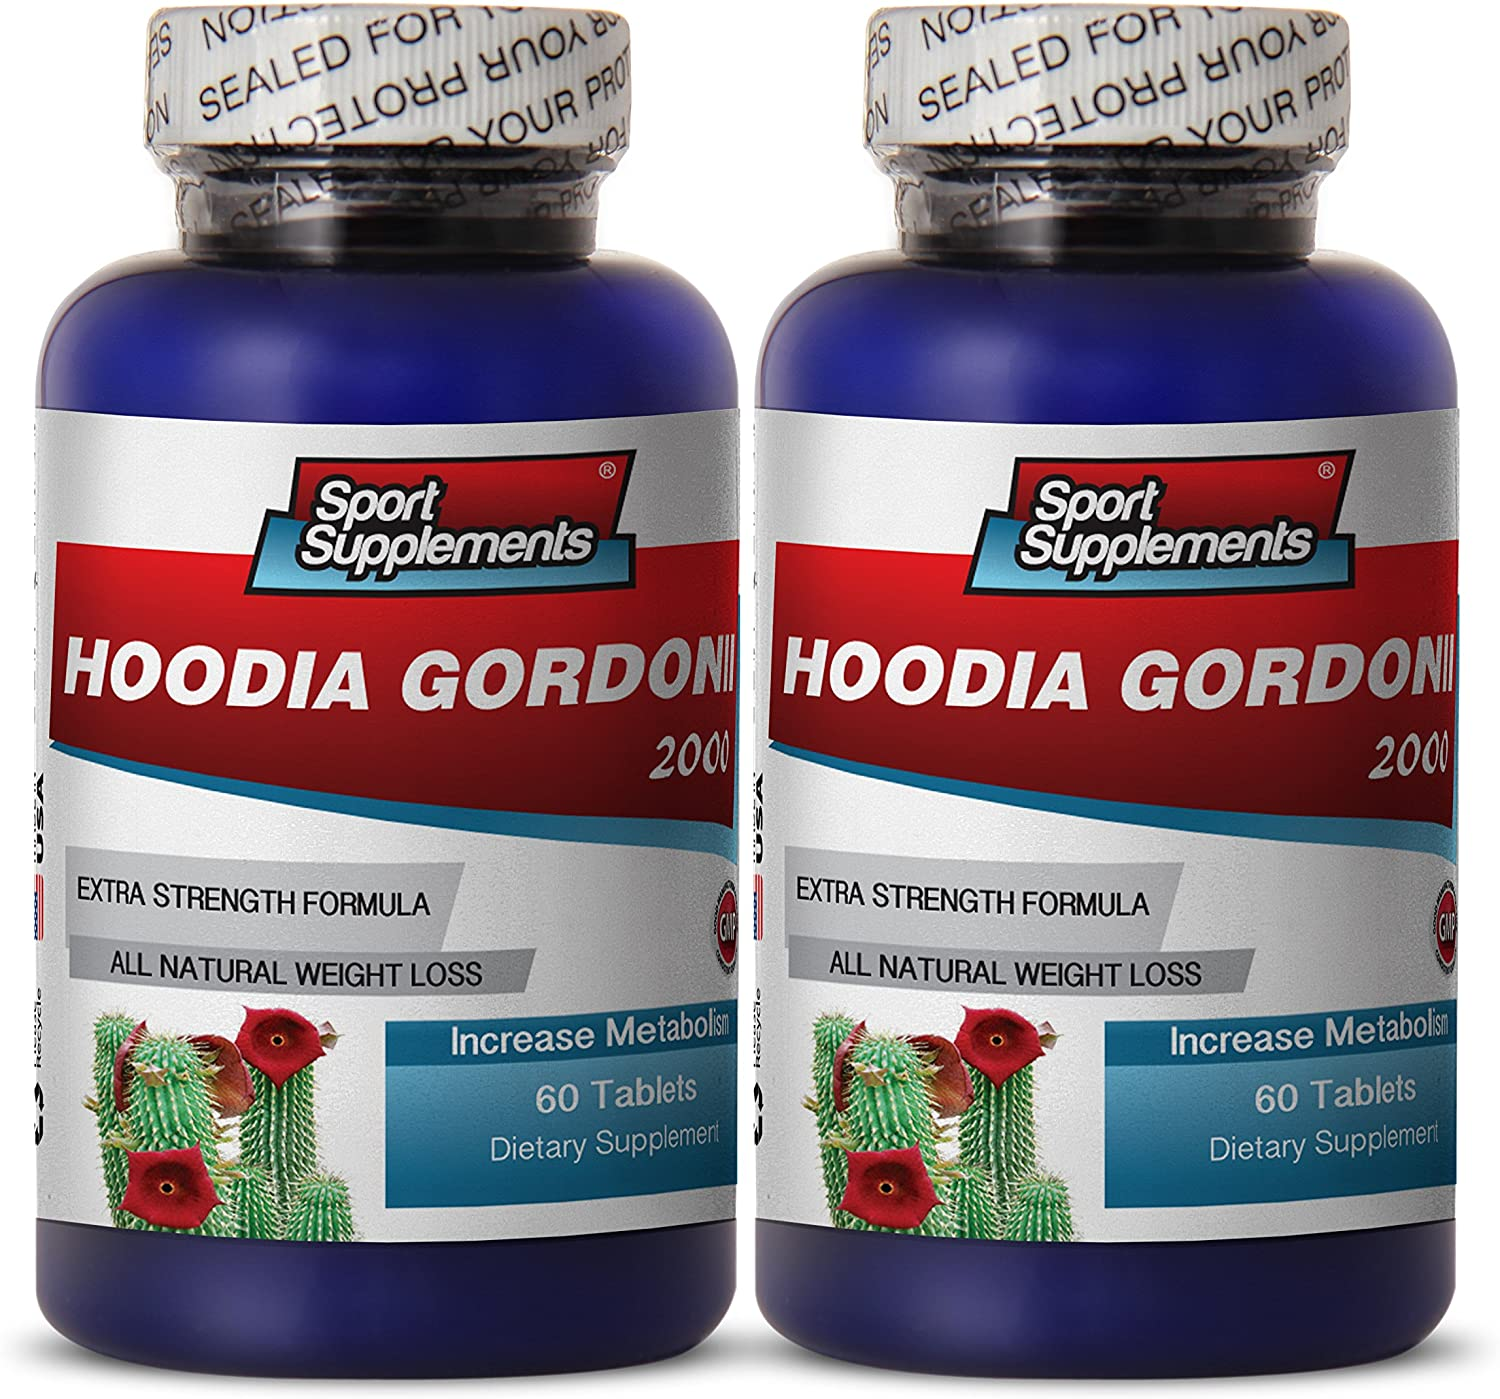 Hoodia Hoodia Gordonii Liquid - Hoodia Gordonii Cactus 2000mg Diet 120 Tablets - Control Weight Loss and Obesity with Herbal Hoodia Gordonii Supplement (2 Bottles)